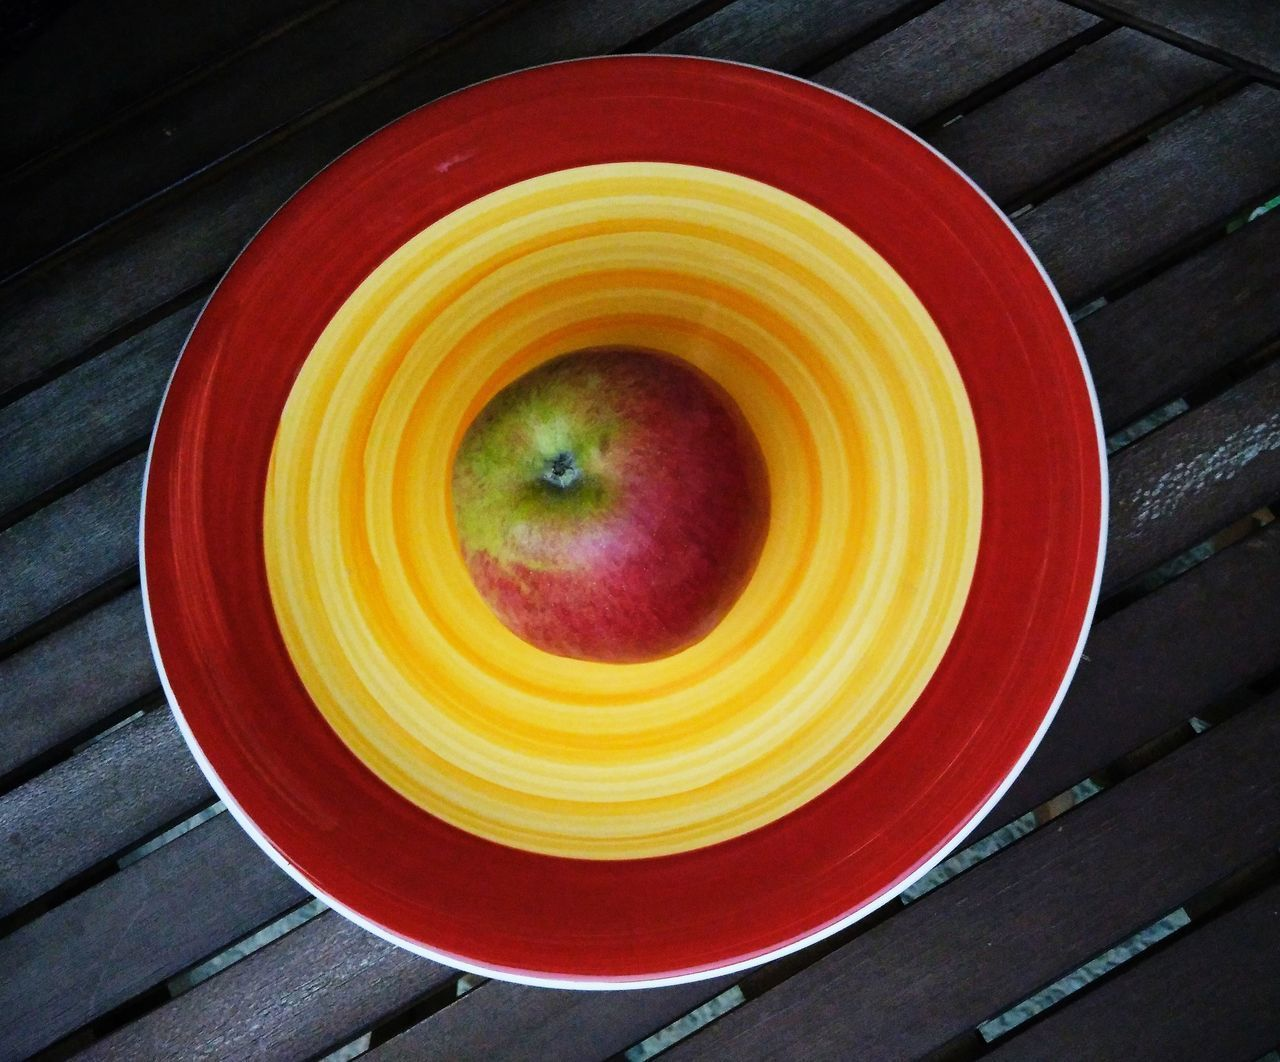 food and drink, healthy eating, freshness, food, wellbeing, directly above, fruit, close-up, no people, indoors, red, high angle view, yellow, still life, wood - material, table, apple - fruit, refreshment, geometric shape, orange color, crockery